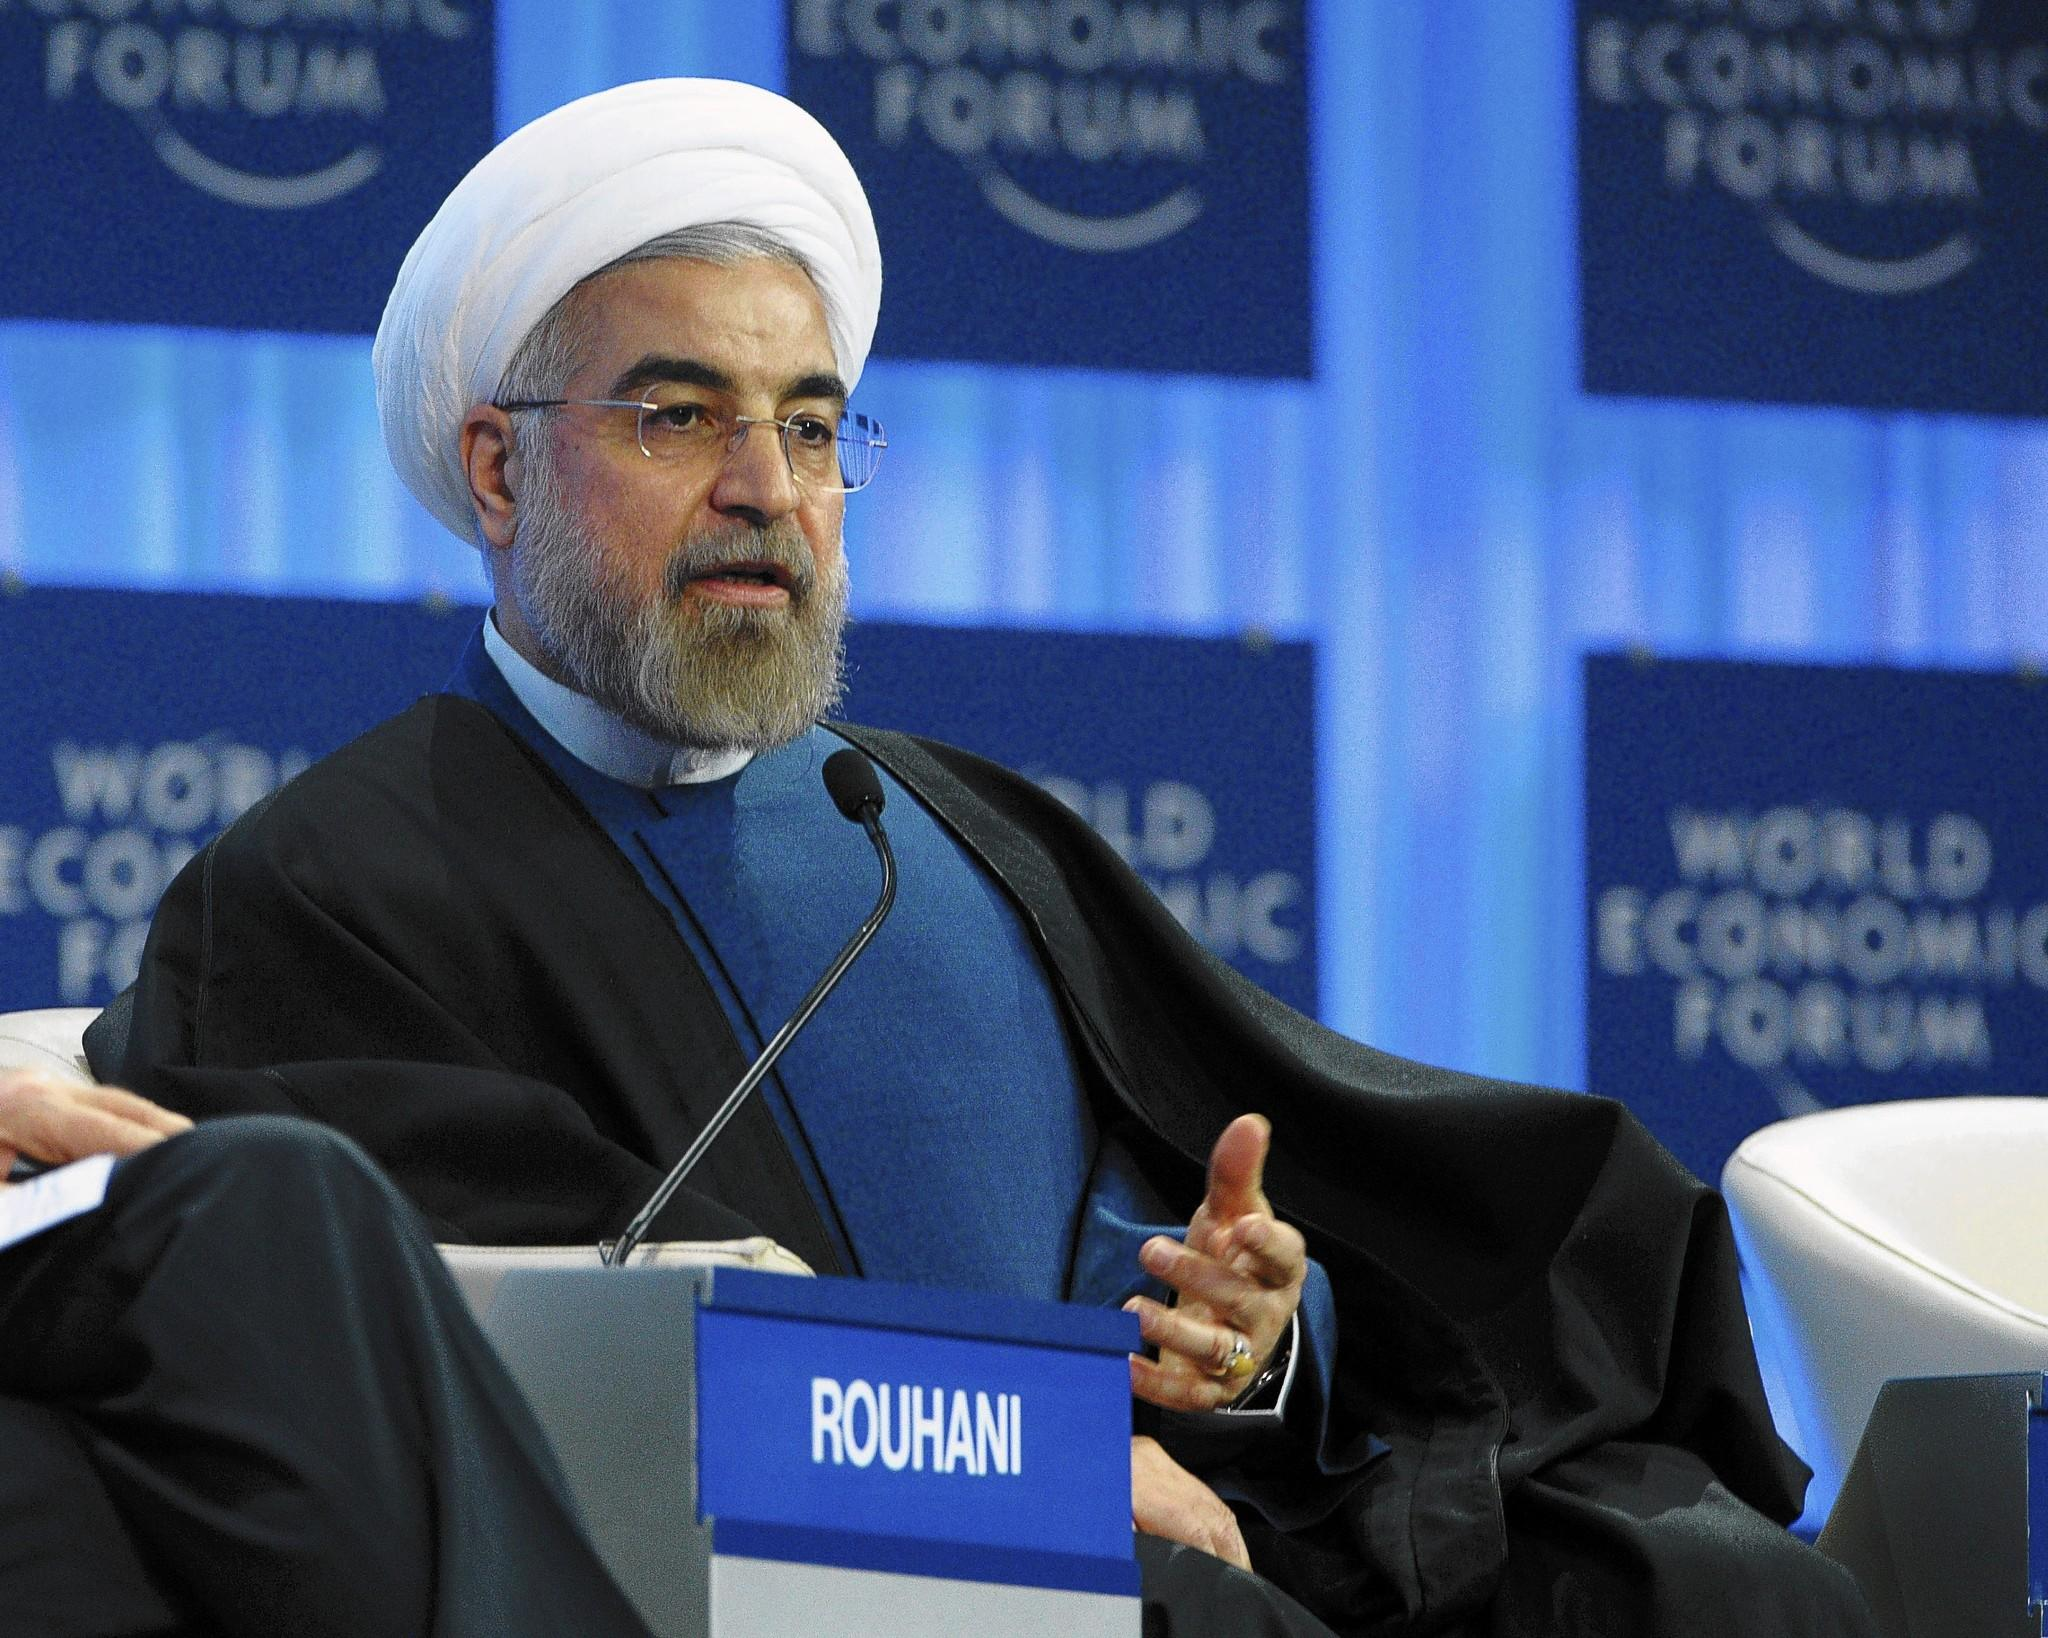 Iranian President Hassan Rouhani addresses the World Economic Forum in Davos on Thursday. Some 40 world leaders gather in the Swiss ski resort Davos to discuss and debate a wide range of issues including the causes of conflicts plaguing the Middle East, and how to reinvigorate the global economy.